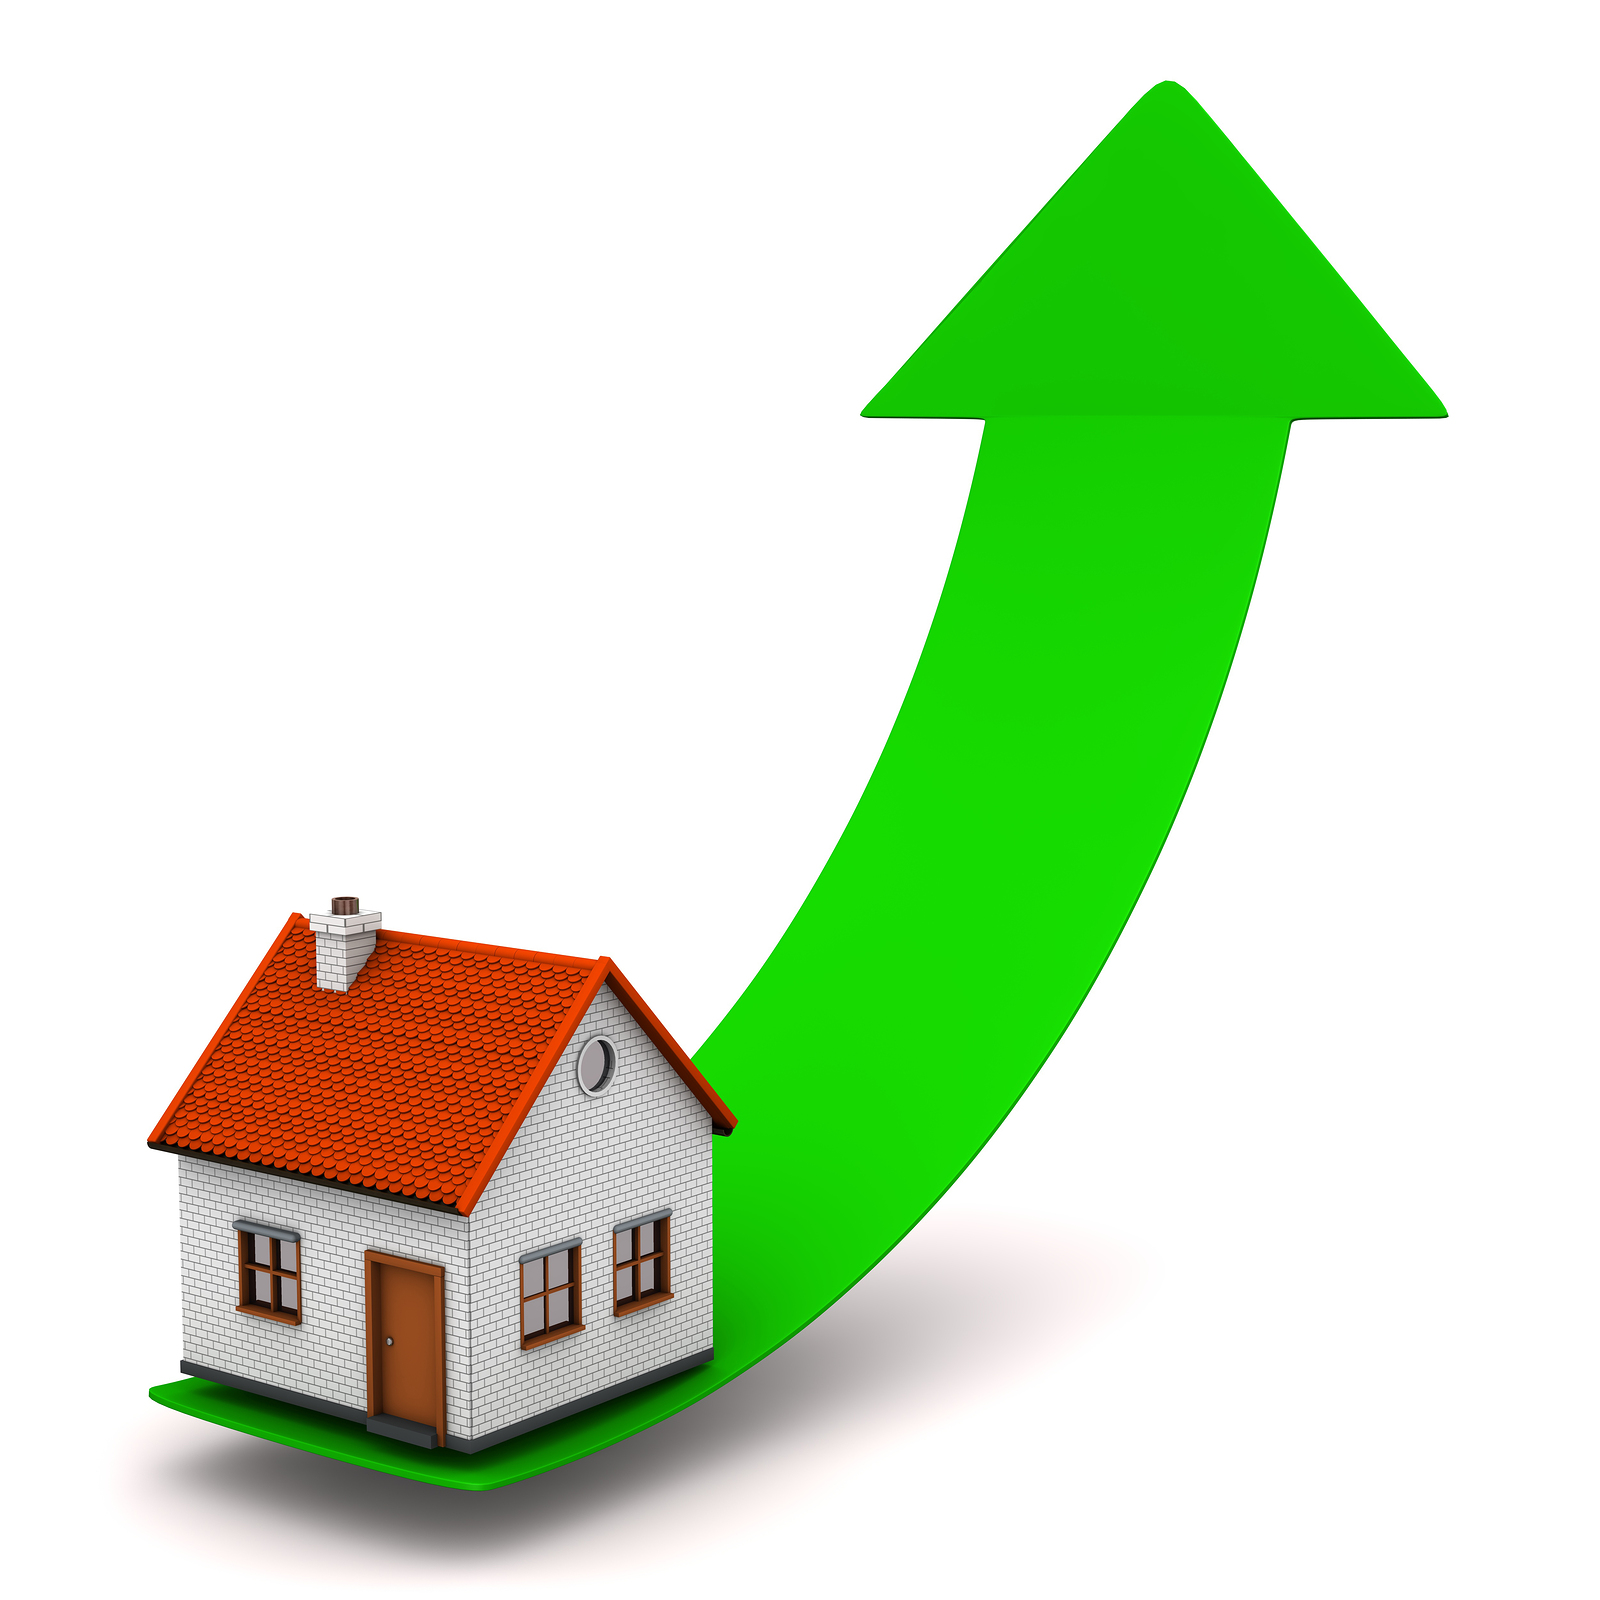 House growth yields